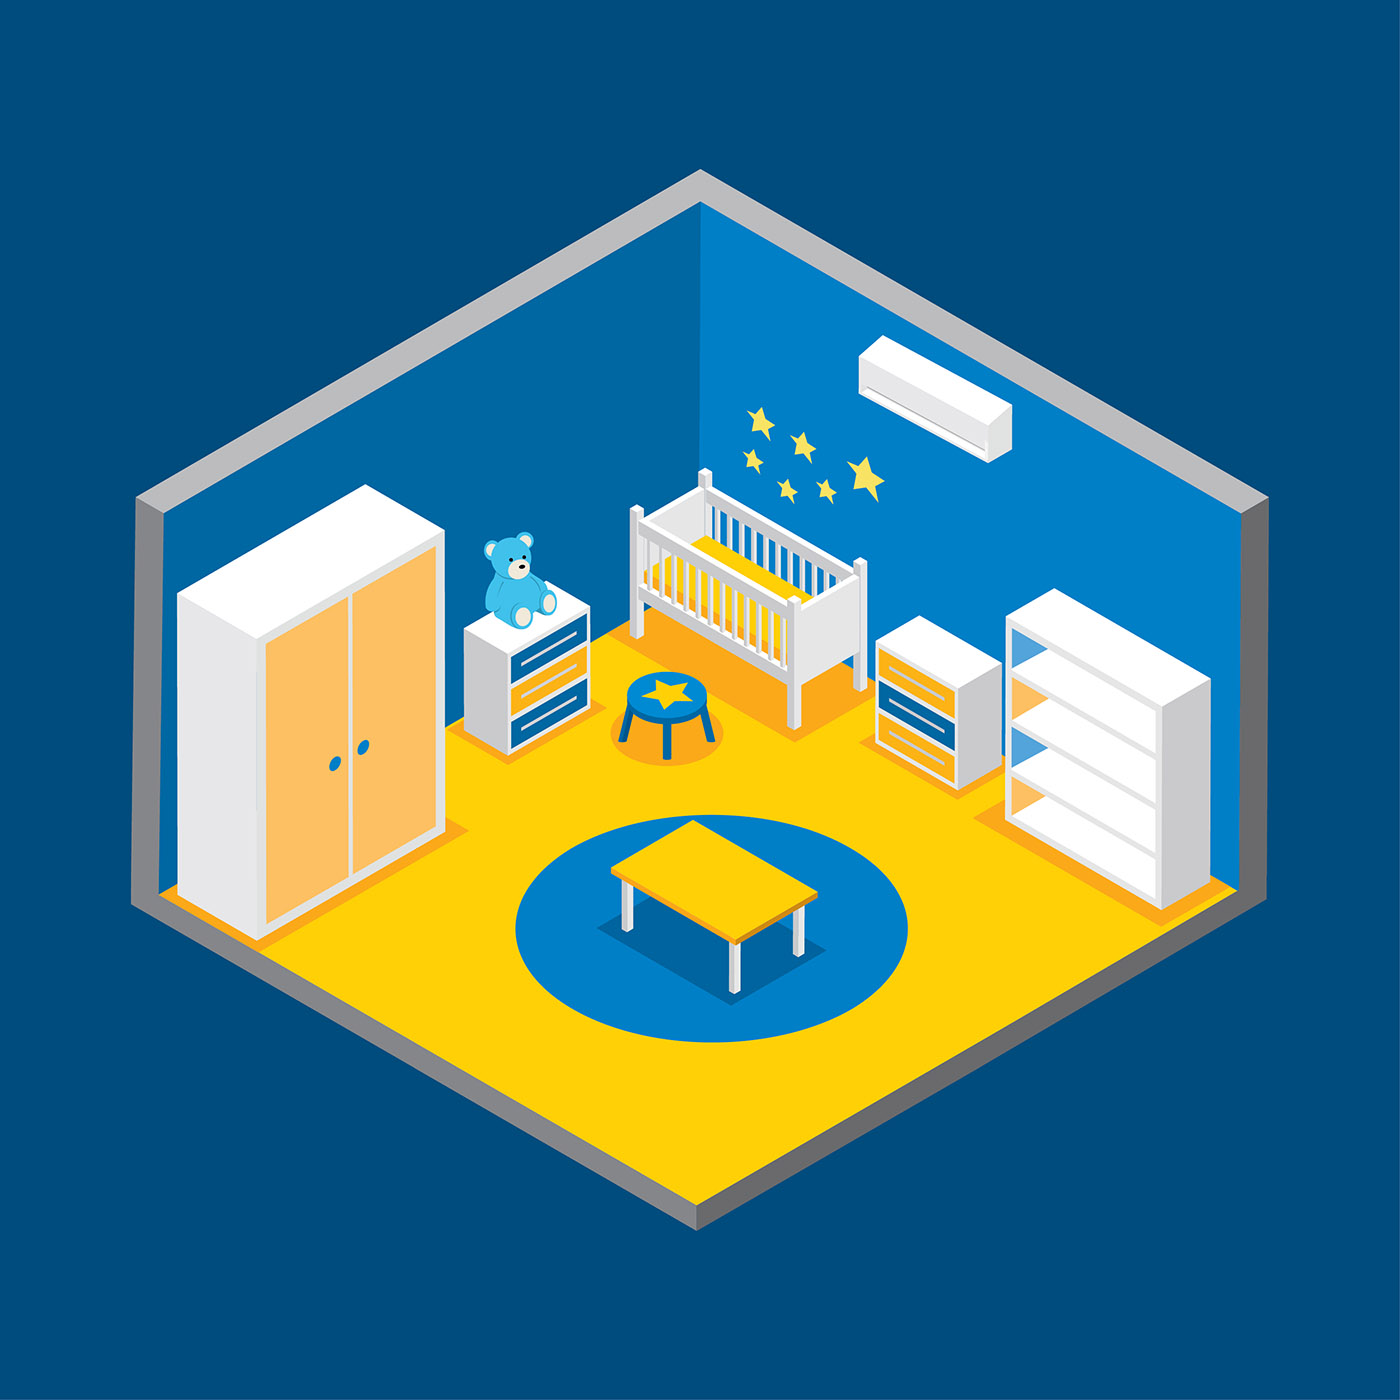 Kids Room Decoration Space Theme Vector Illustration: Kids Room Decor Isometric Vector